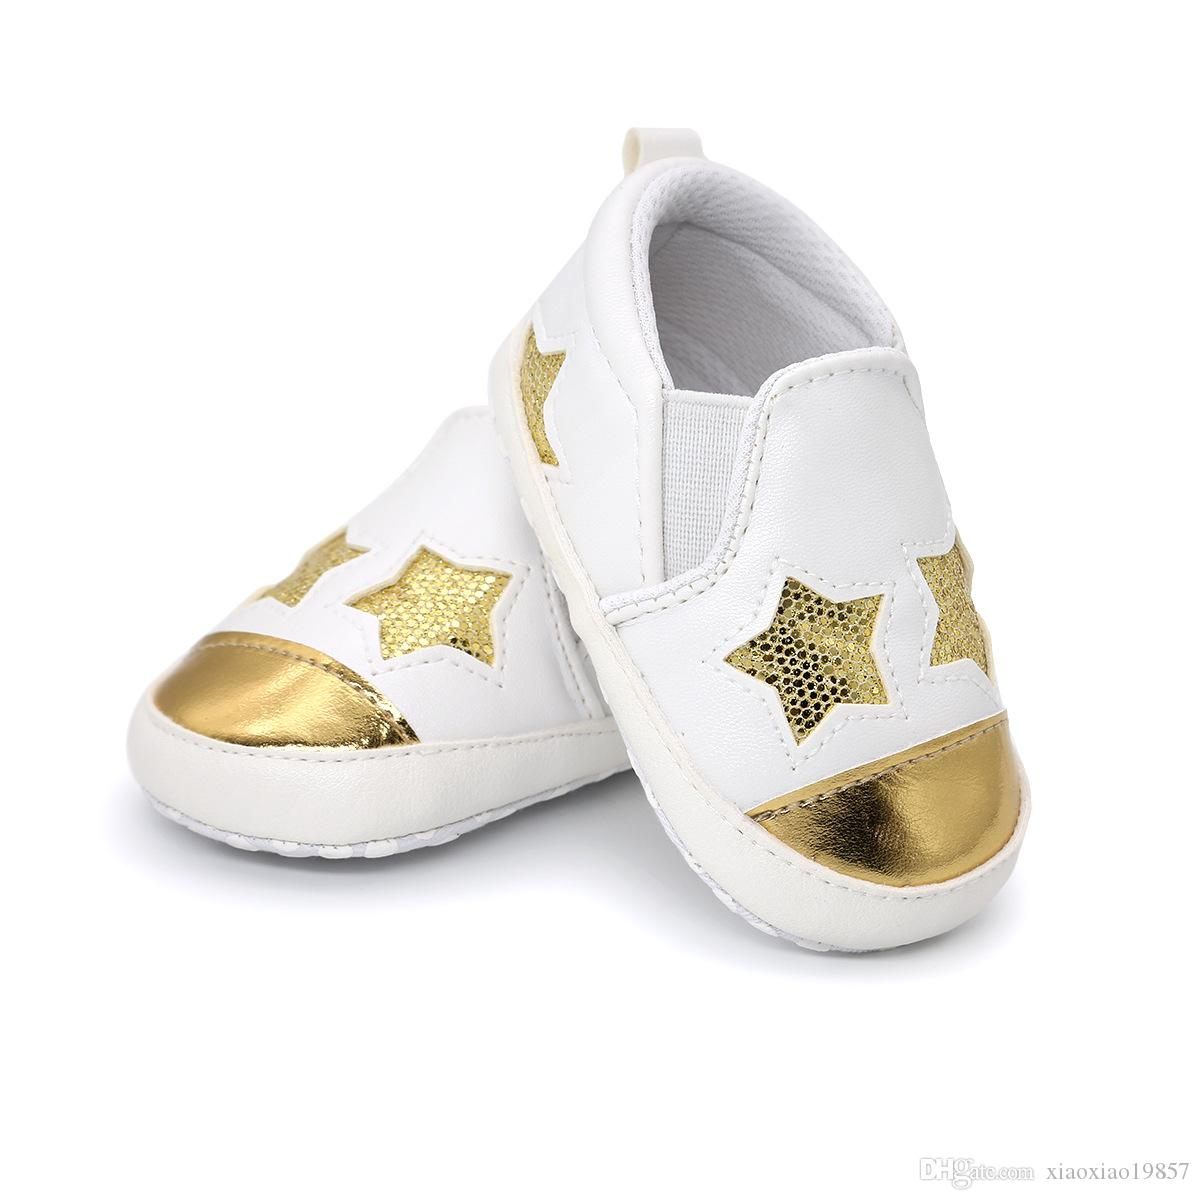 2018 Hot Sale Pu Leather Bling Sequins Stars Baby Shoes Moccasins Infant  Toddler Boys Girls First Walkers Sneakers for 0-18M Baby Moccasins Baby  Sneakers ... 9cef90b00e5a